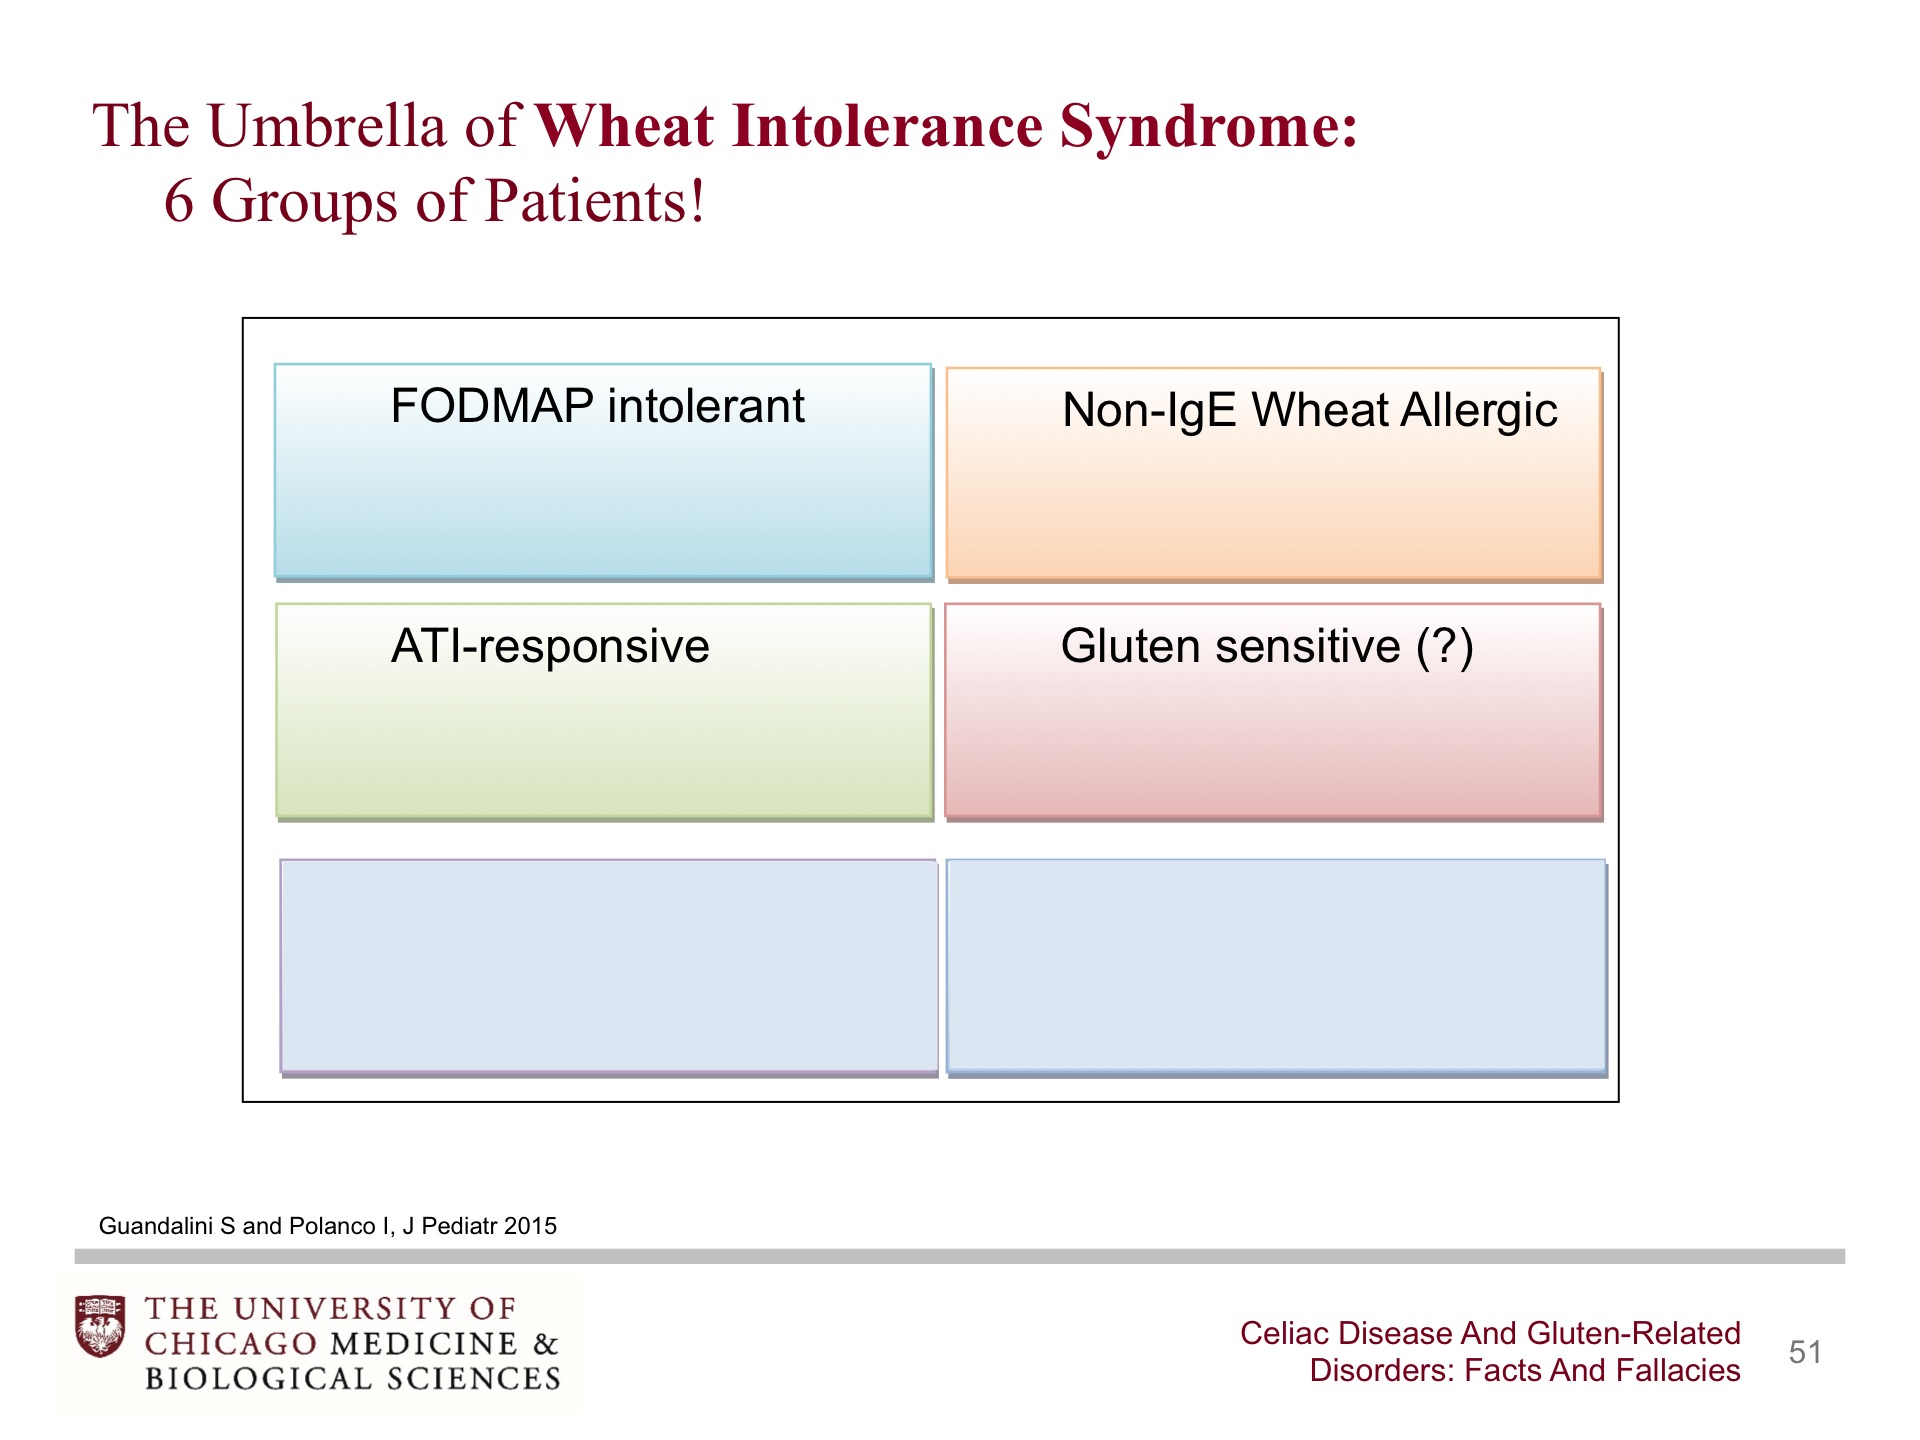 Celiac Disease and Gluten-Related Disorders: Facts and Fallacies